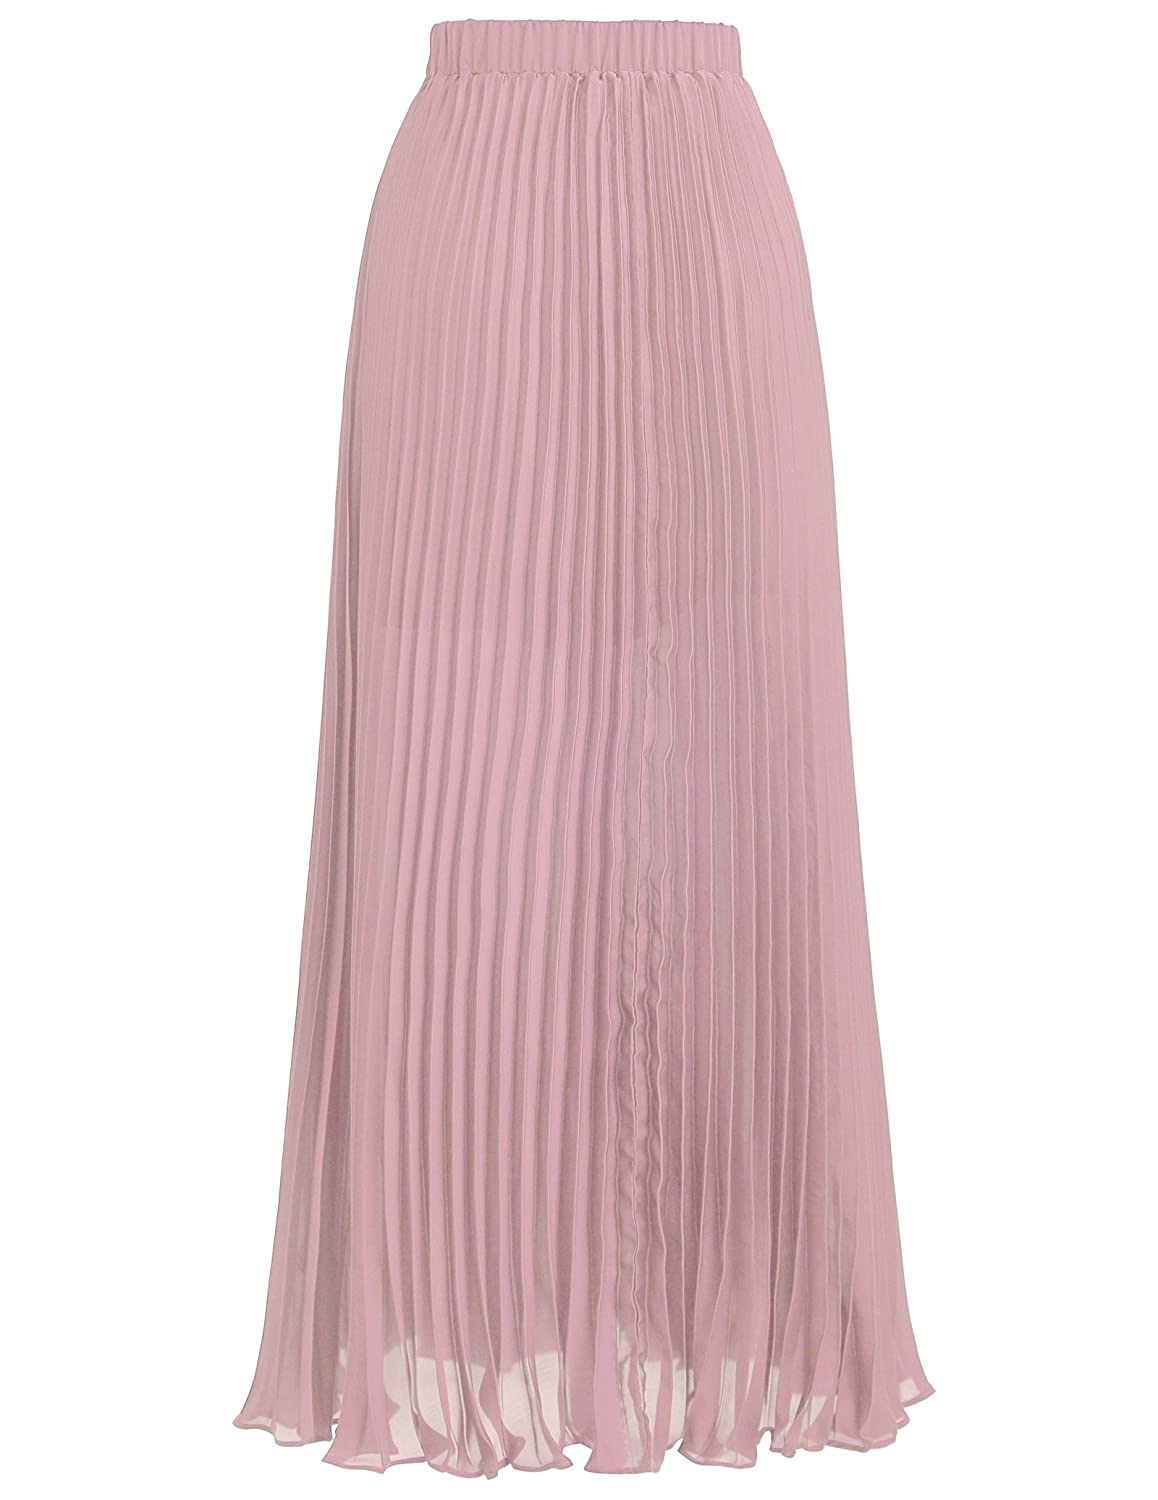 885186985 Kate Kasin Women Ankle Length Pink Pleated Skirts for Bridal Shower Size S  KK614-2 at Amazon Women's Clothing store: